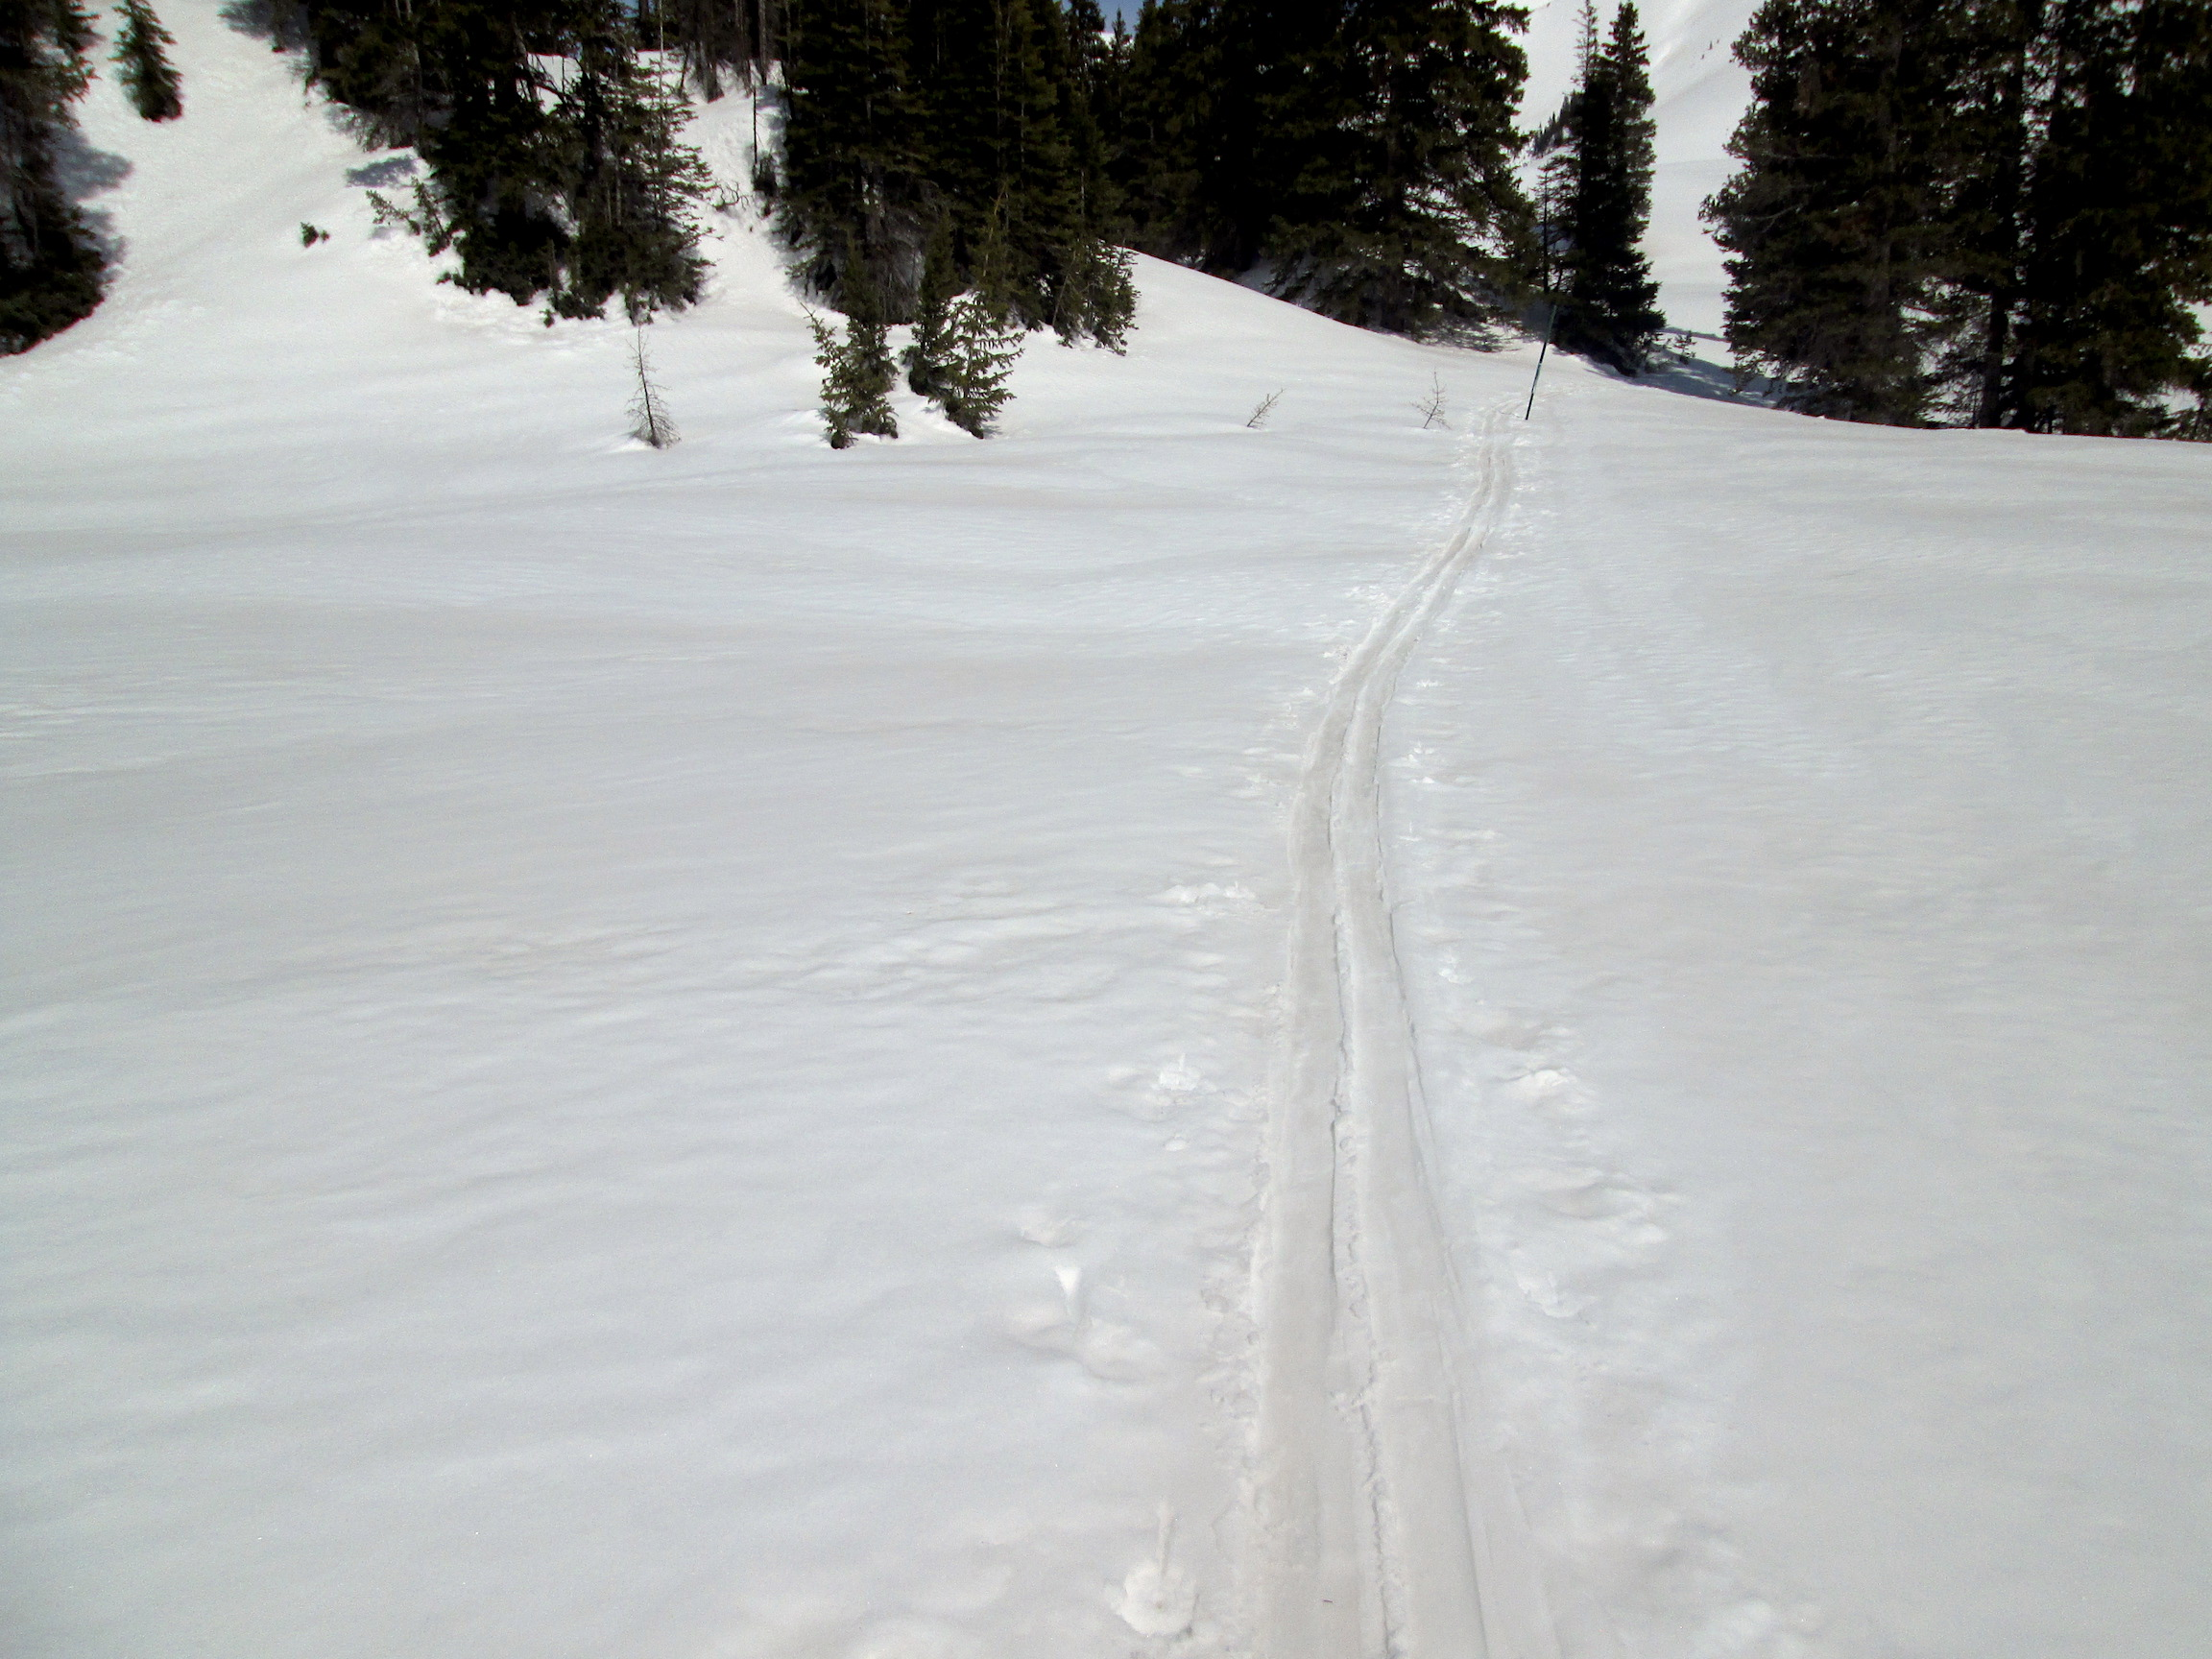 """The April 9 D4 event near Swamp Angel Study Plot. D4 was a """"dry"""" event, occurring without precipitation.  Notice pink dust in ski track and covering landscape."""